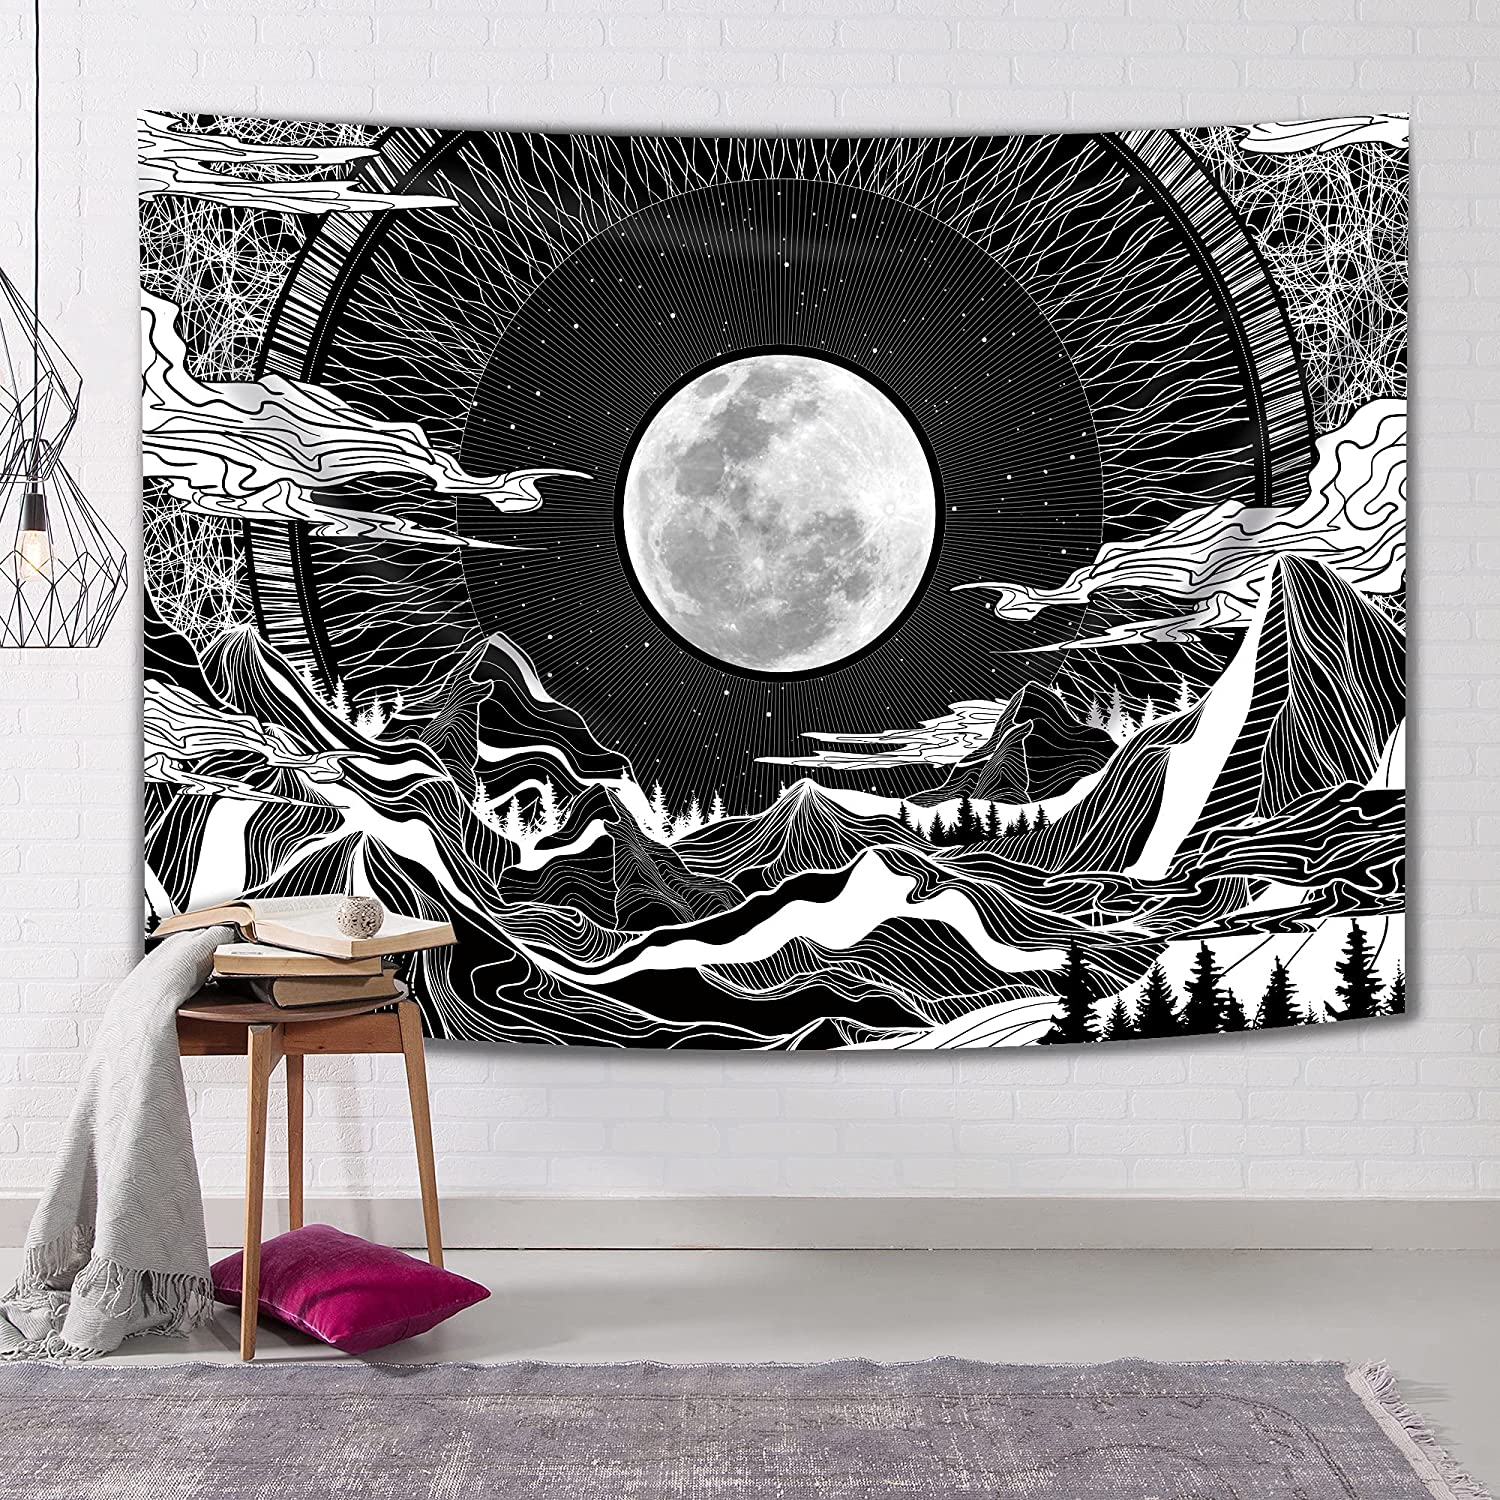 Hexagram Moon Mountain Tapestry Black and White Tapestry for Bedroom, Psychedelic Clouds Tree Aesthetic Tapestries Wall Hanging, Trippy Star Night Sky Wall Tapestry for Room Dorm Decor 51x59 Inches